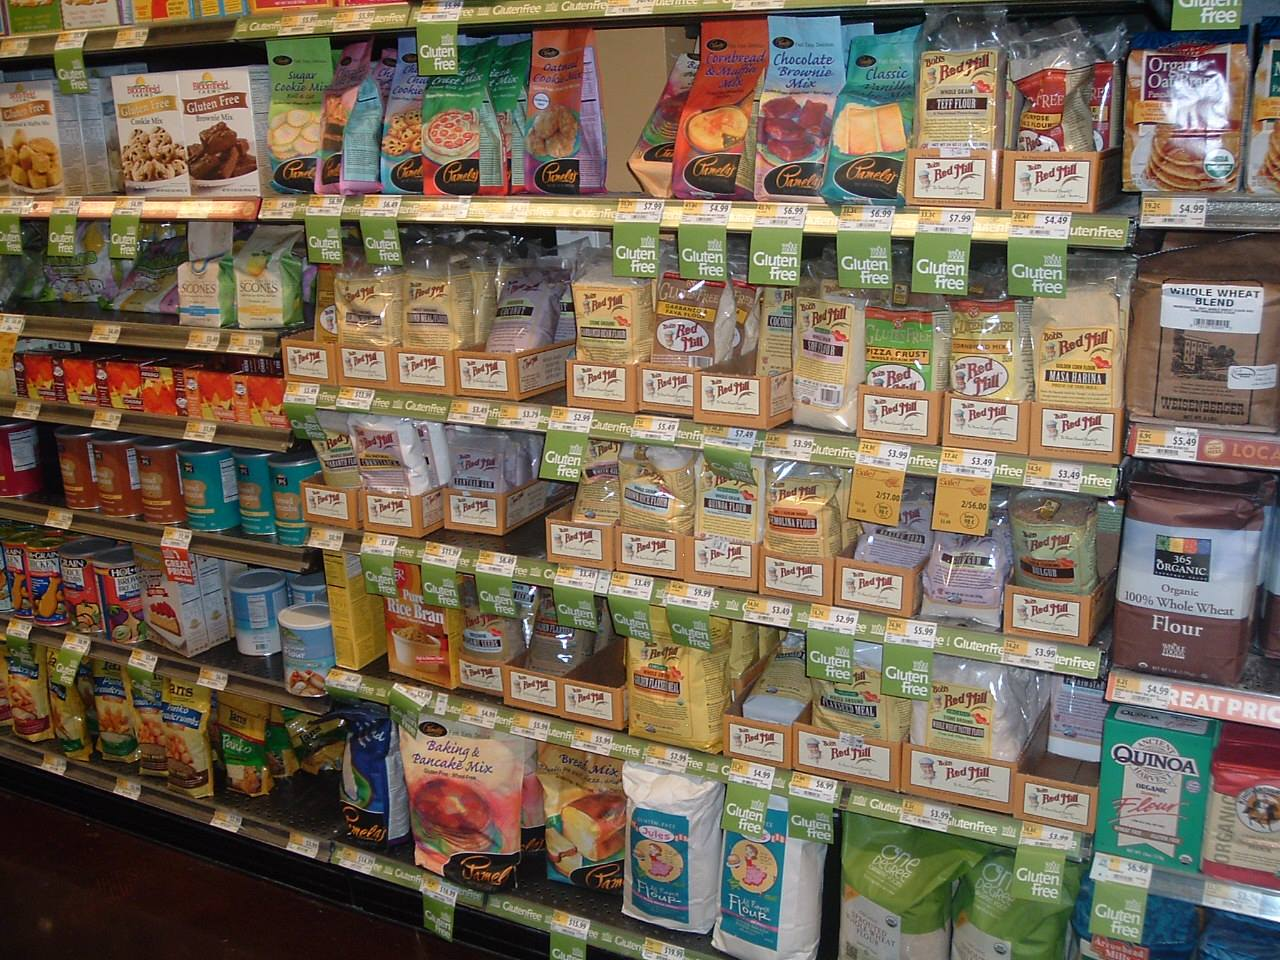 When it comes to variety and selection in gluten free products, Whole Foods Market rules Lexington! What you see here is just the tip of the iceberg. Every aisle of the store is loaded with gluten free foods!